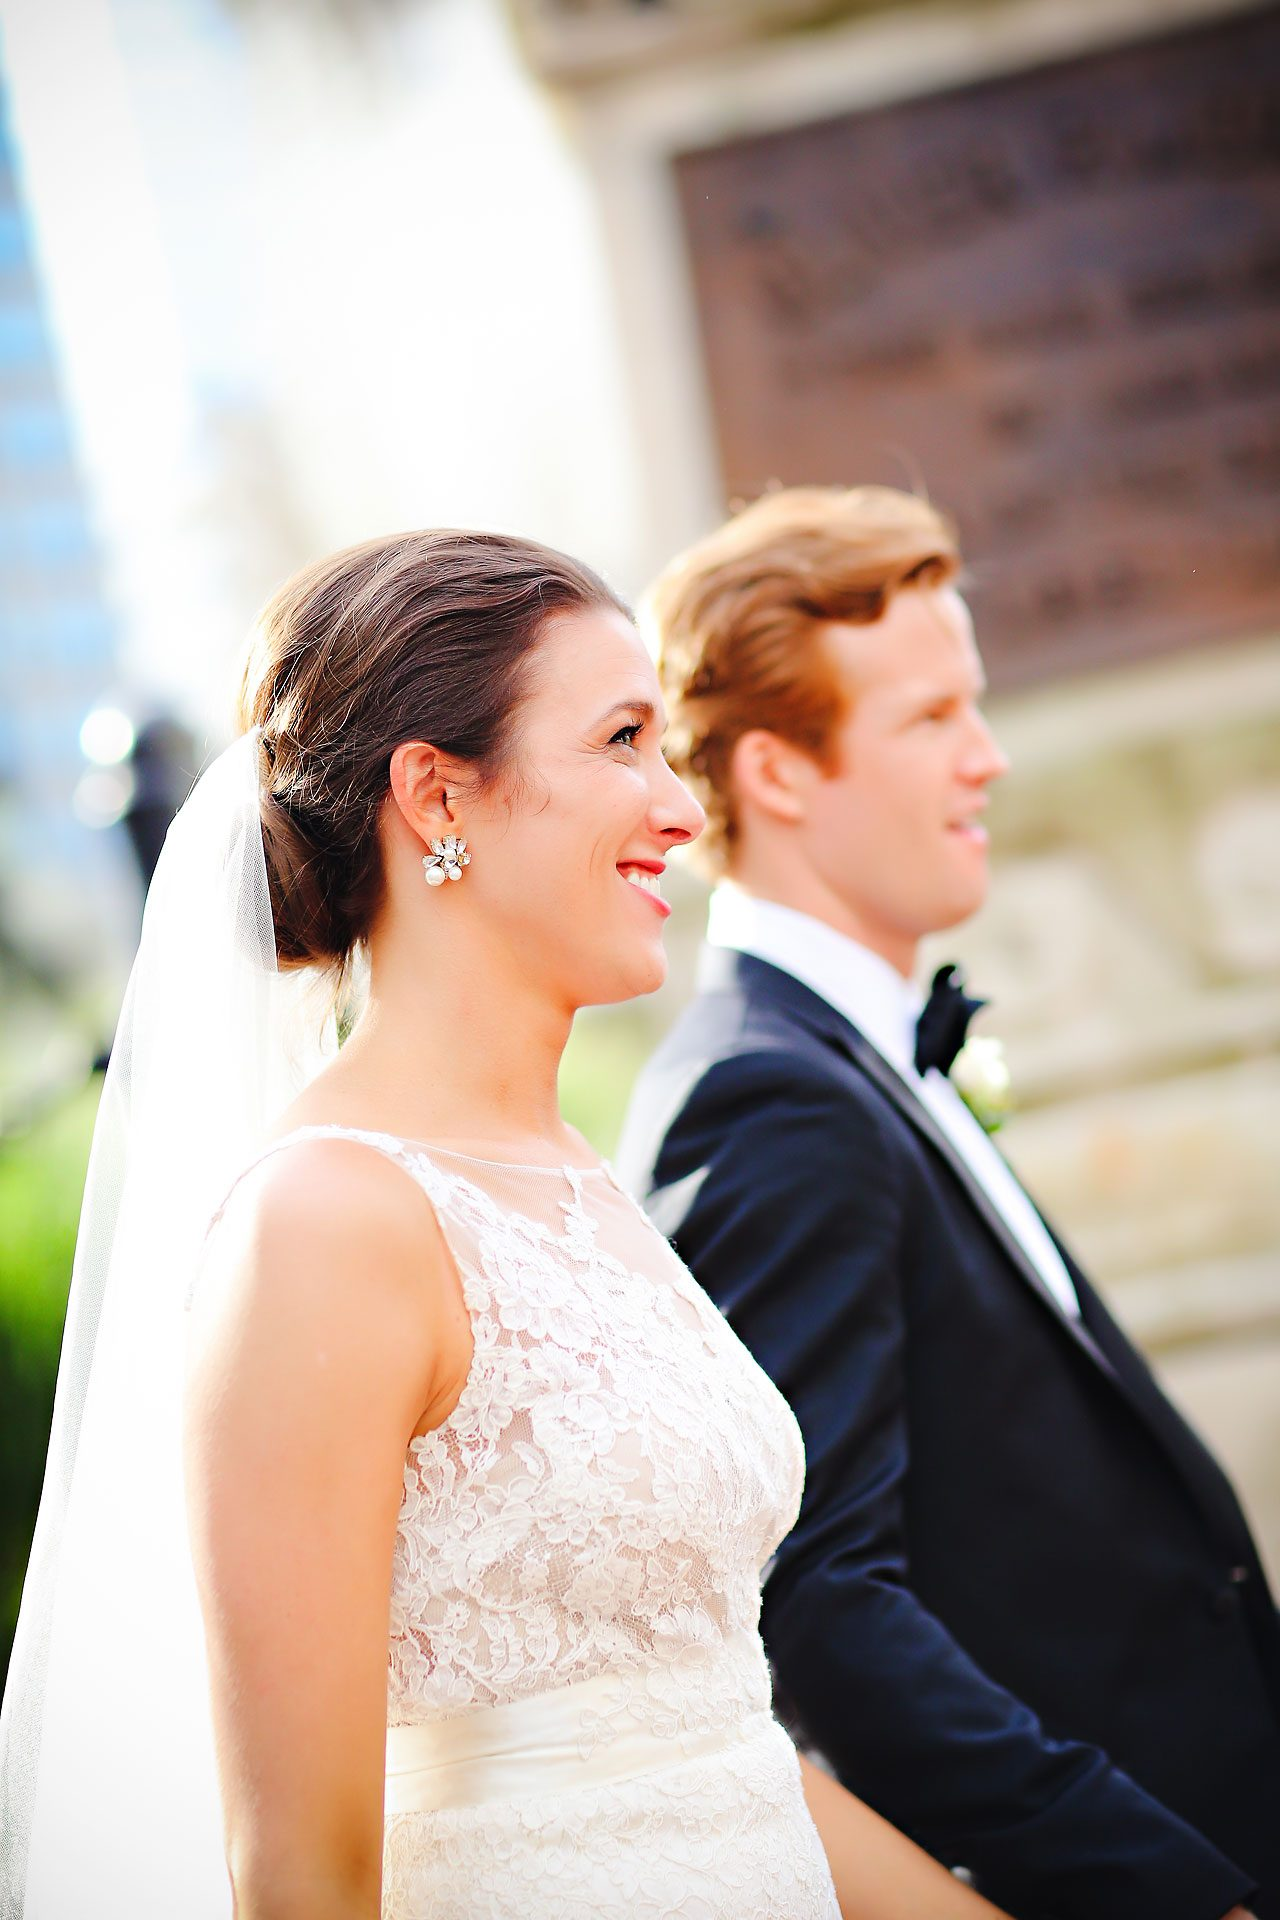 209 katherine austin scottish rite indianapolis wedding